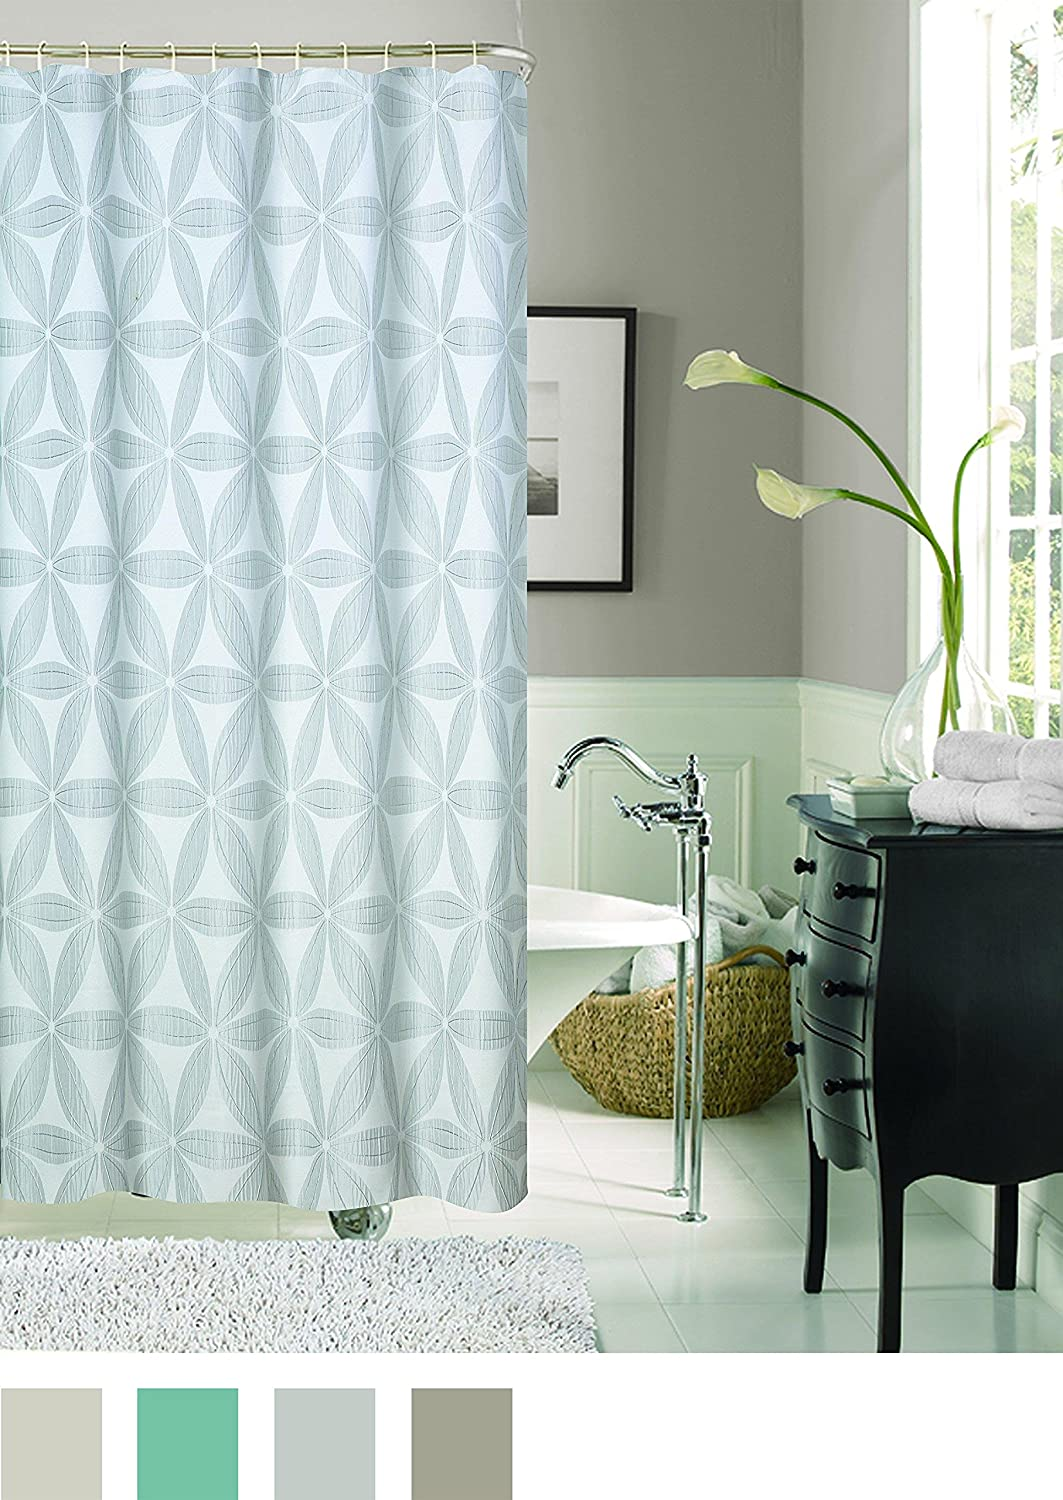 Dainty Home Iris Heavy Jacquard Fabric Shower Curtain Taupe Kitchen Jpg 1063x1500 Wvu